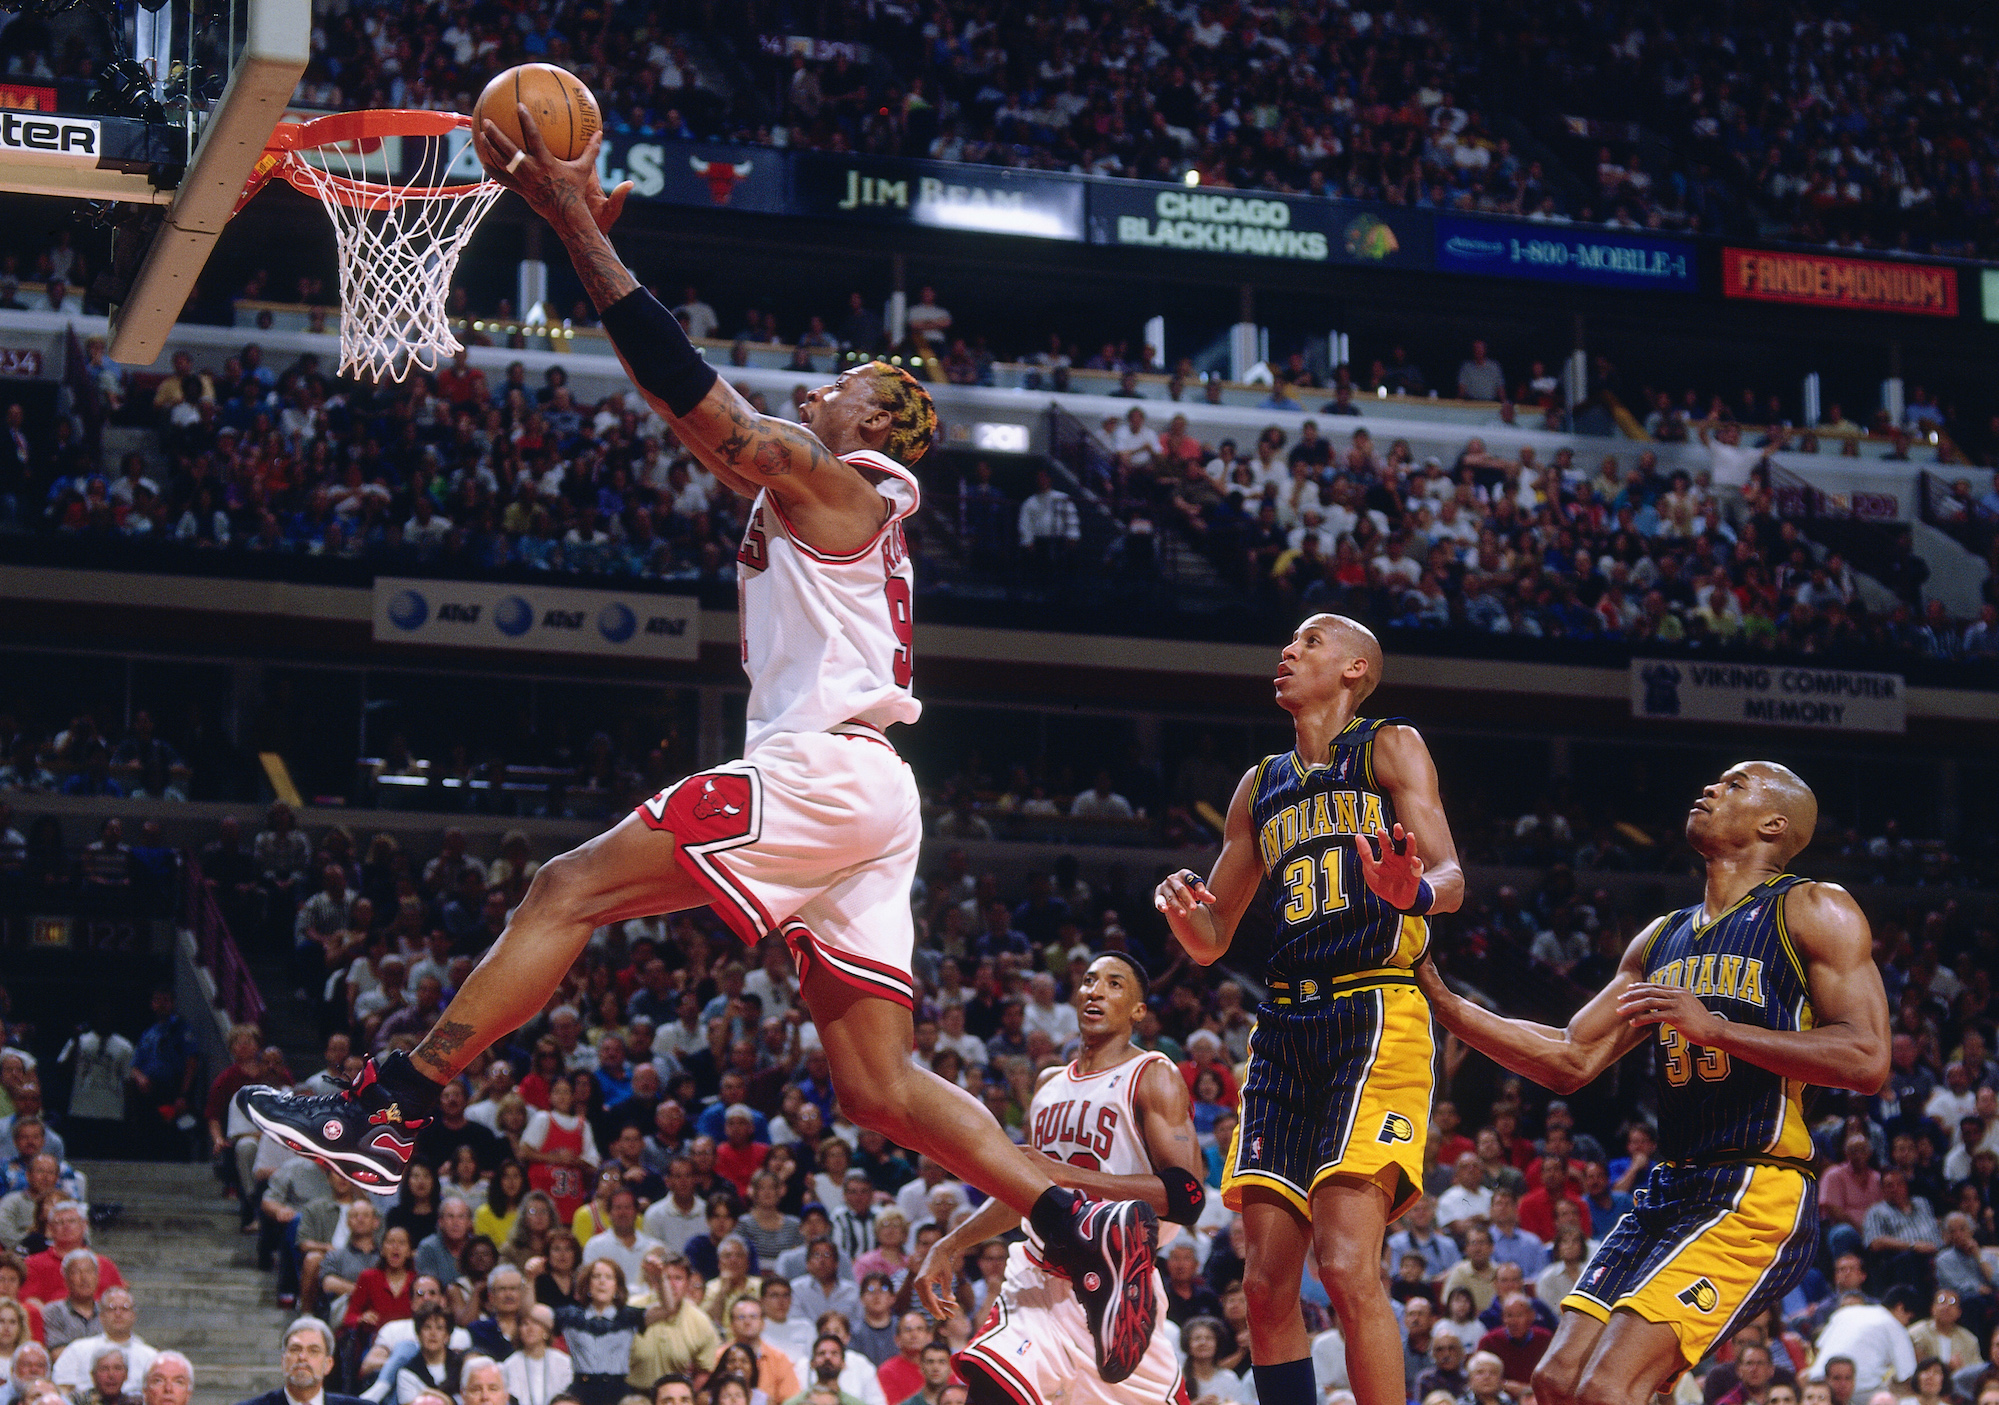 CHICAGO - MAY 17: Dennis Rodman #91 of the Chicago Bulls shoots a layup during a game played on May 17, 1998 at the United Center in Chicago, Illinois. NOTE TO USER: User expressly acknowledges and agrees that, by downloading and or using this photograph, User is consenting to the terms and conditions of the Getty Images License Agreement. Mandatory Copyright Notice: Copyright 1998 NBAE (Photo by Nathaniel S. Butler/NBAE via Getty Images)